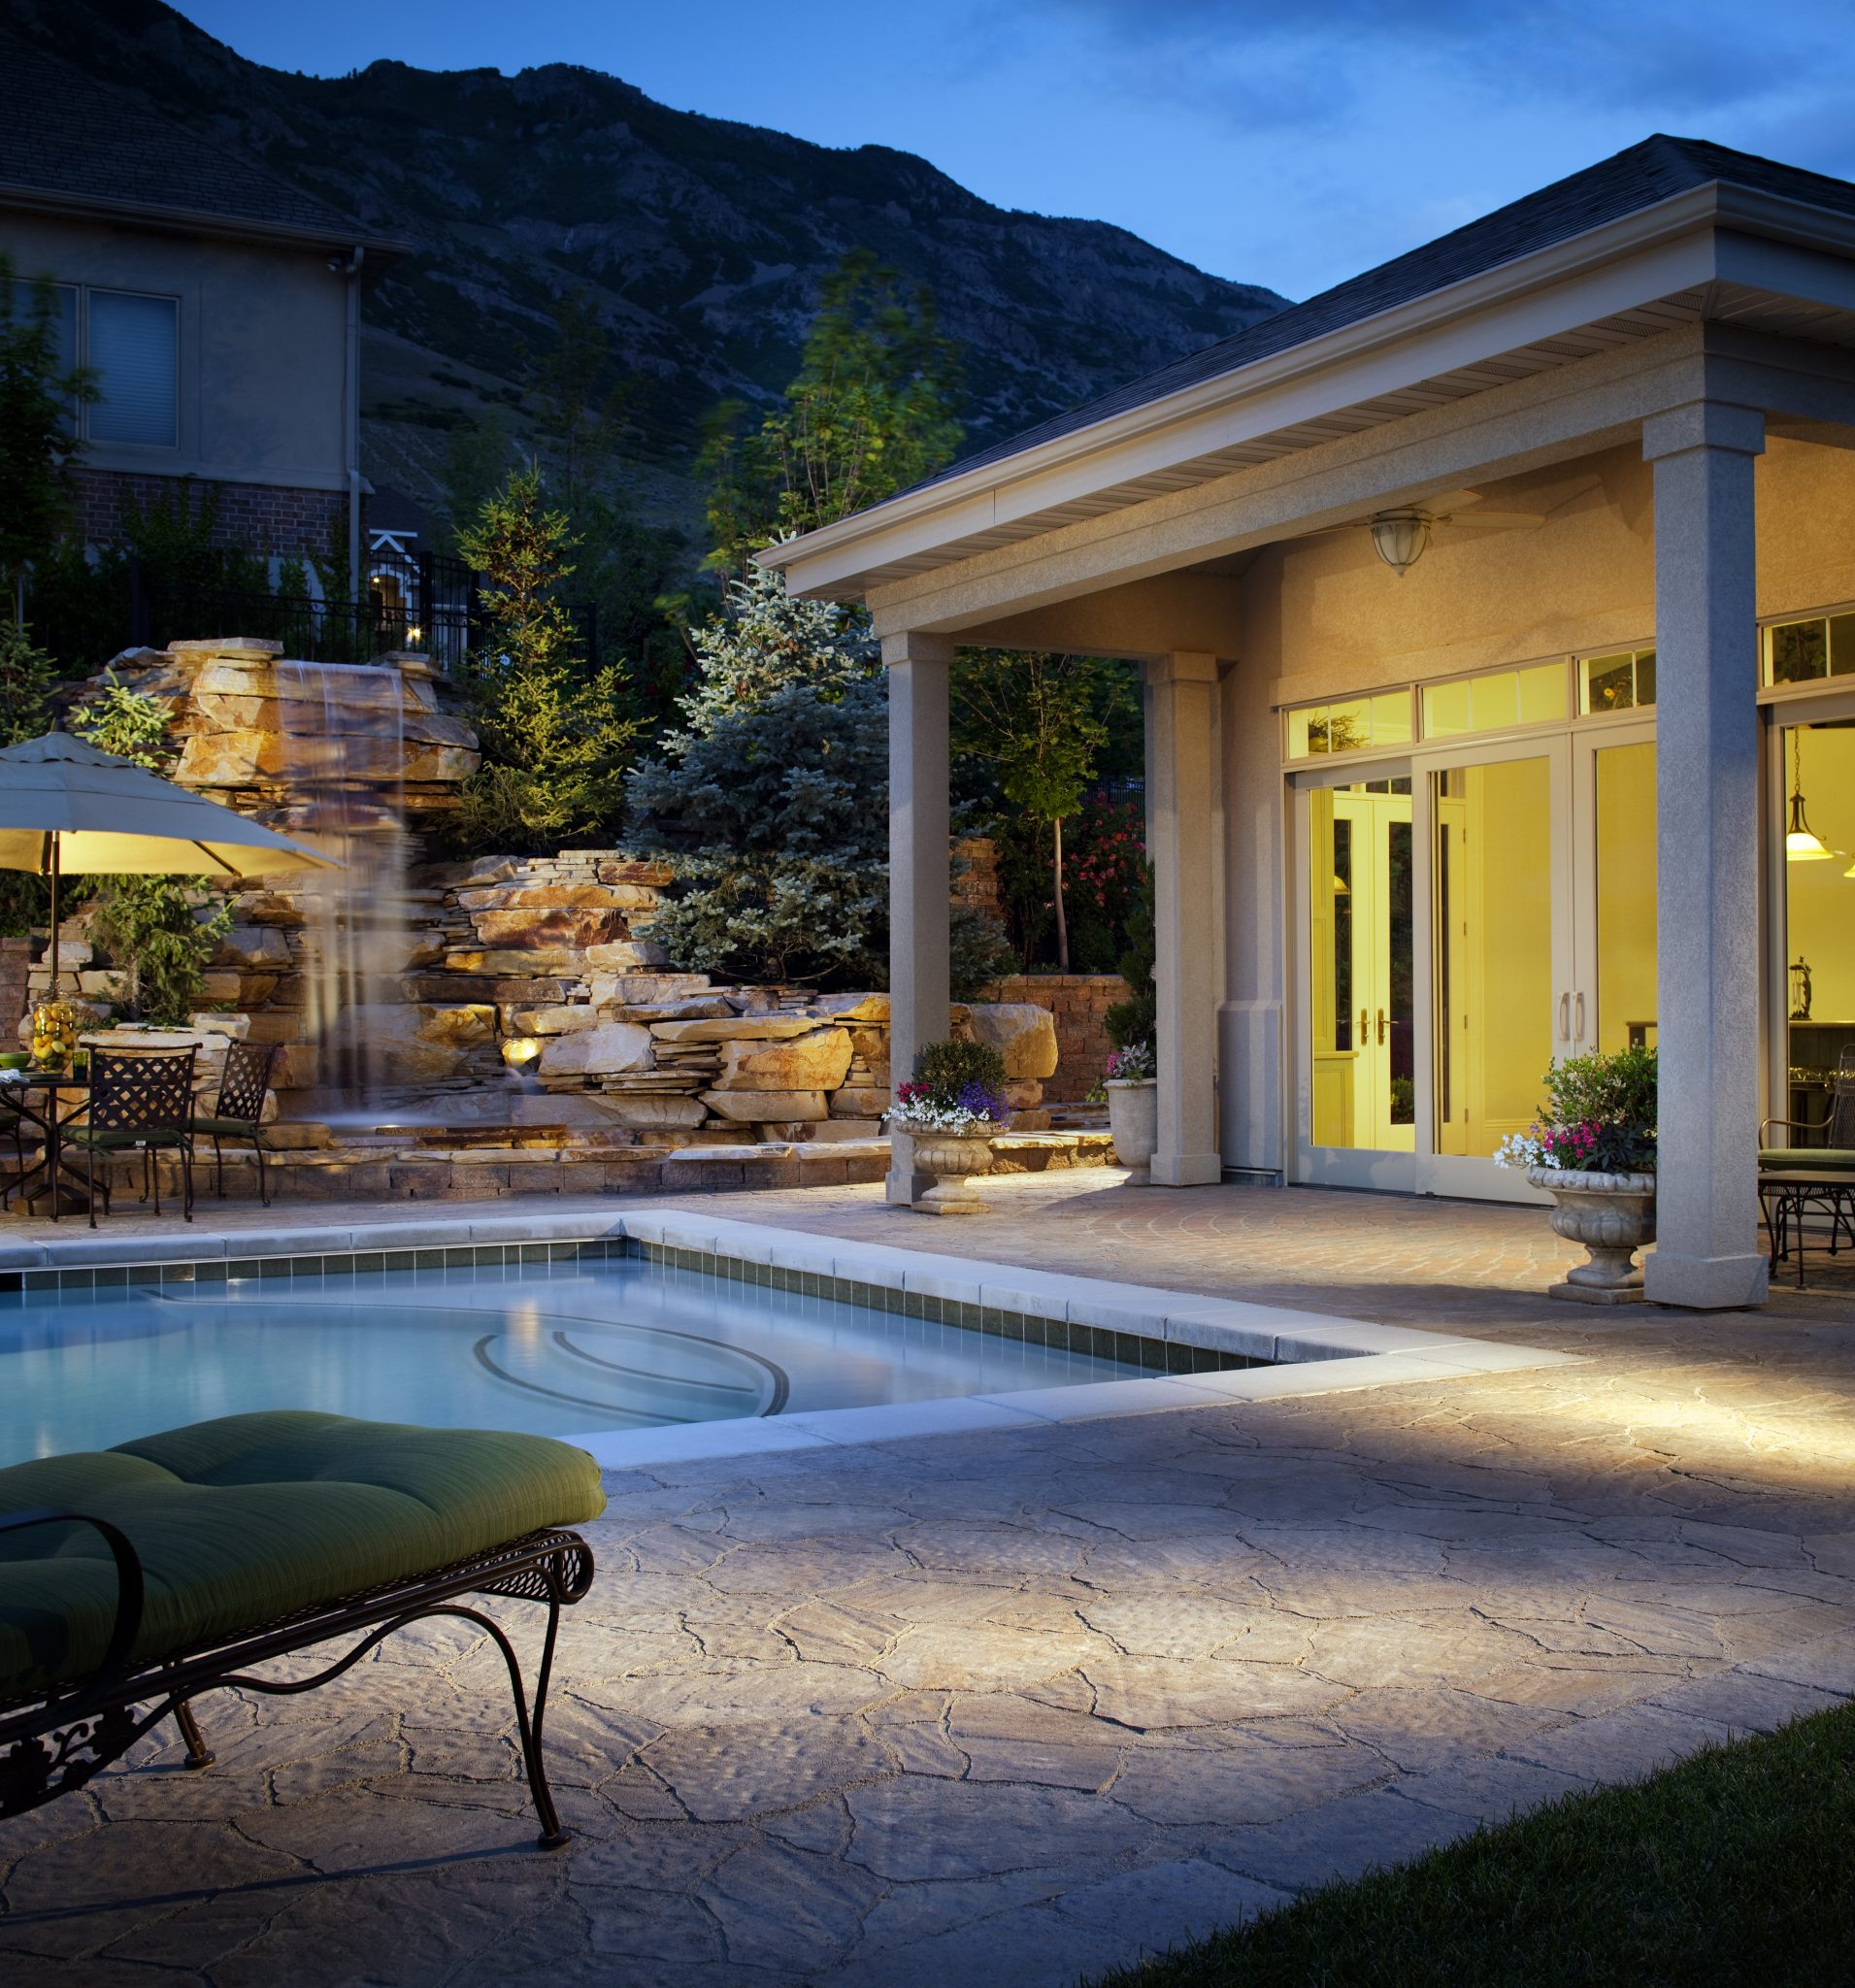 Pool design trends guide ideas inspiration pro tips for Pool design guide